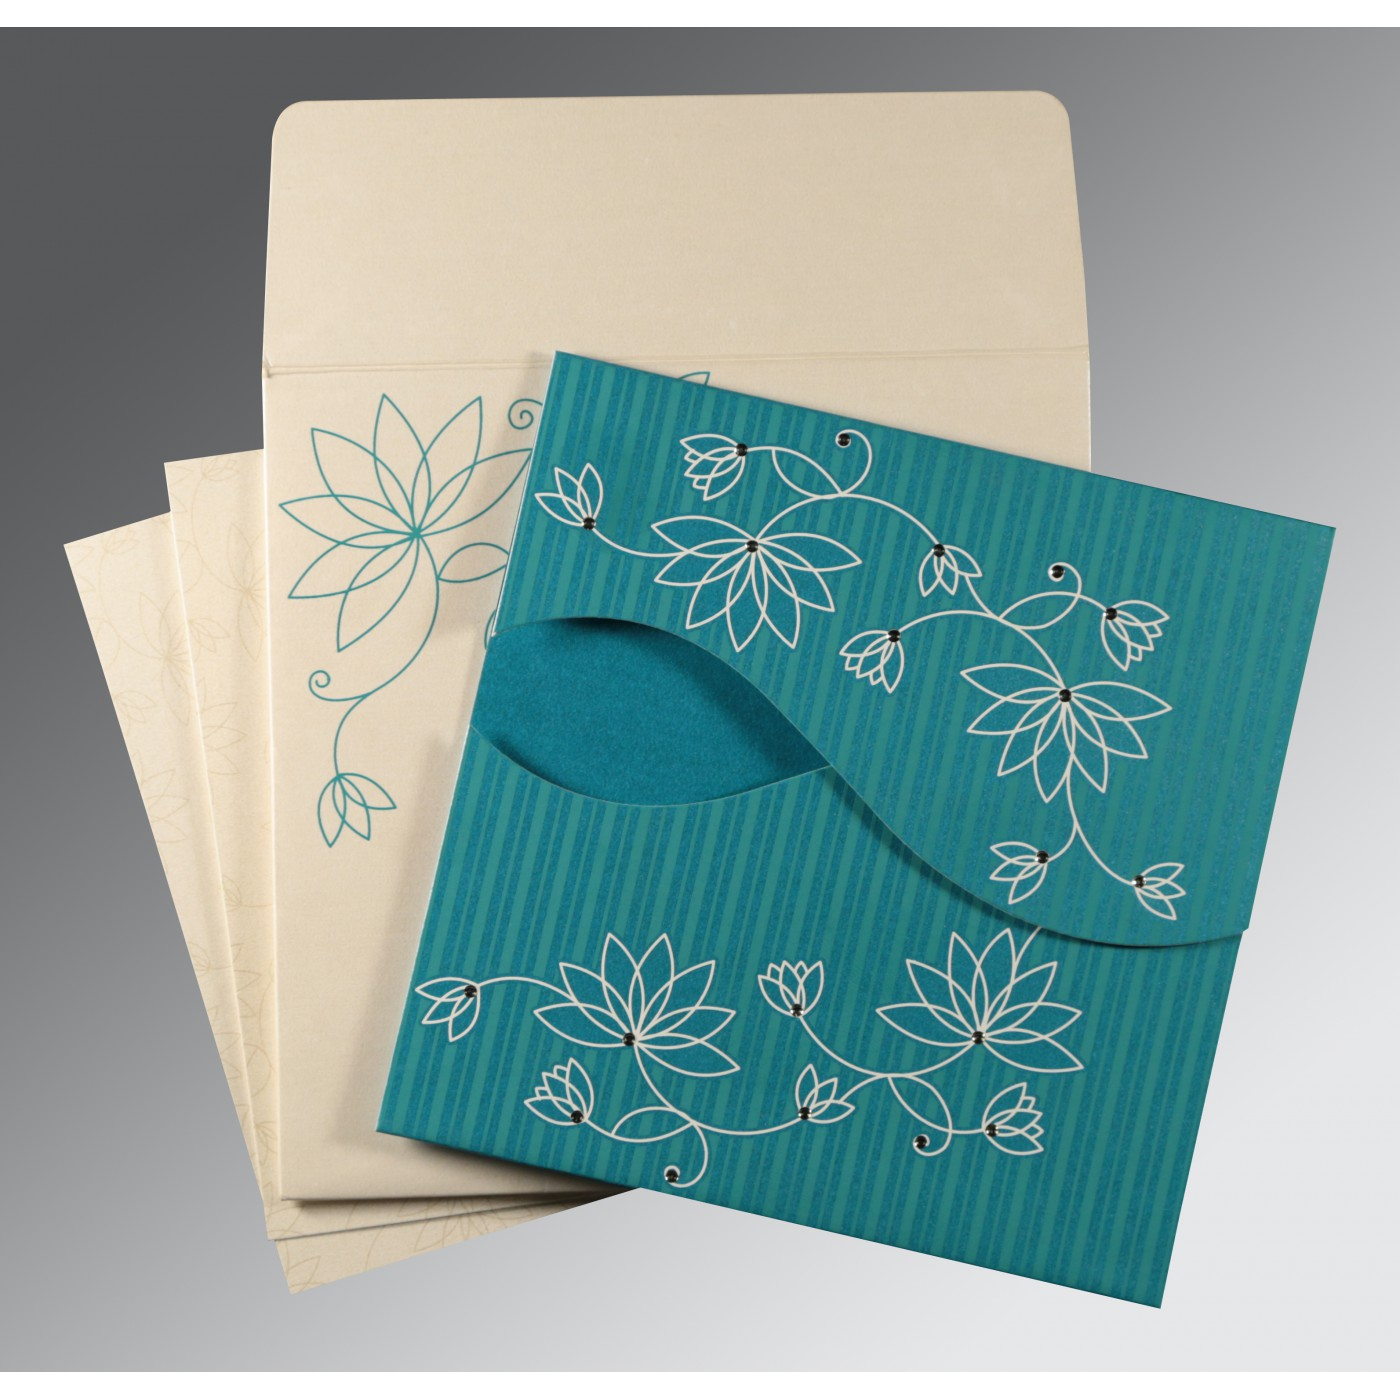 TURQUOISE BLUE SHIMMERY FLORAL THEMED - SCREEN PRINTED WEDDING INVITATION : IN-8251G - 123WeddingCards